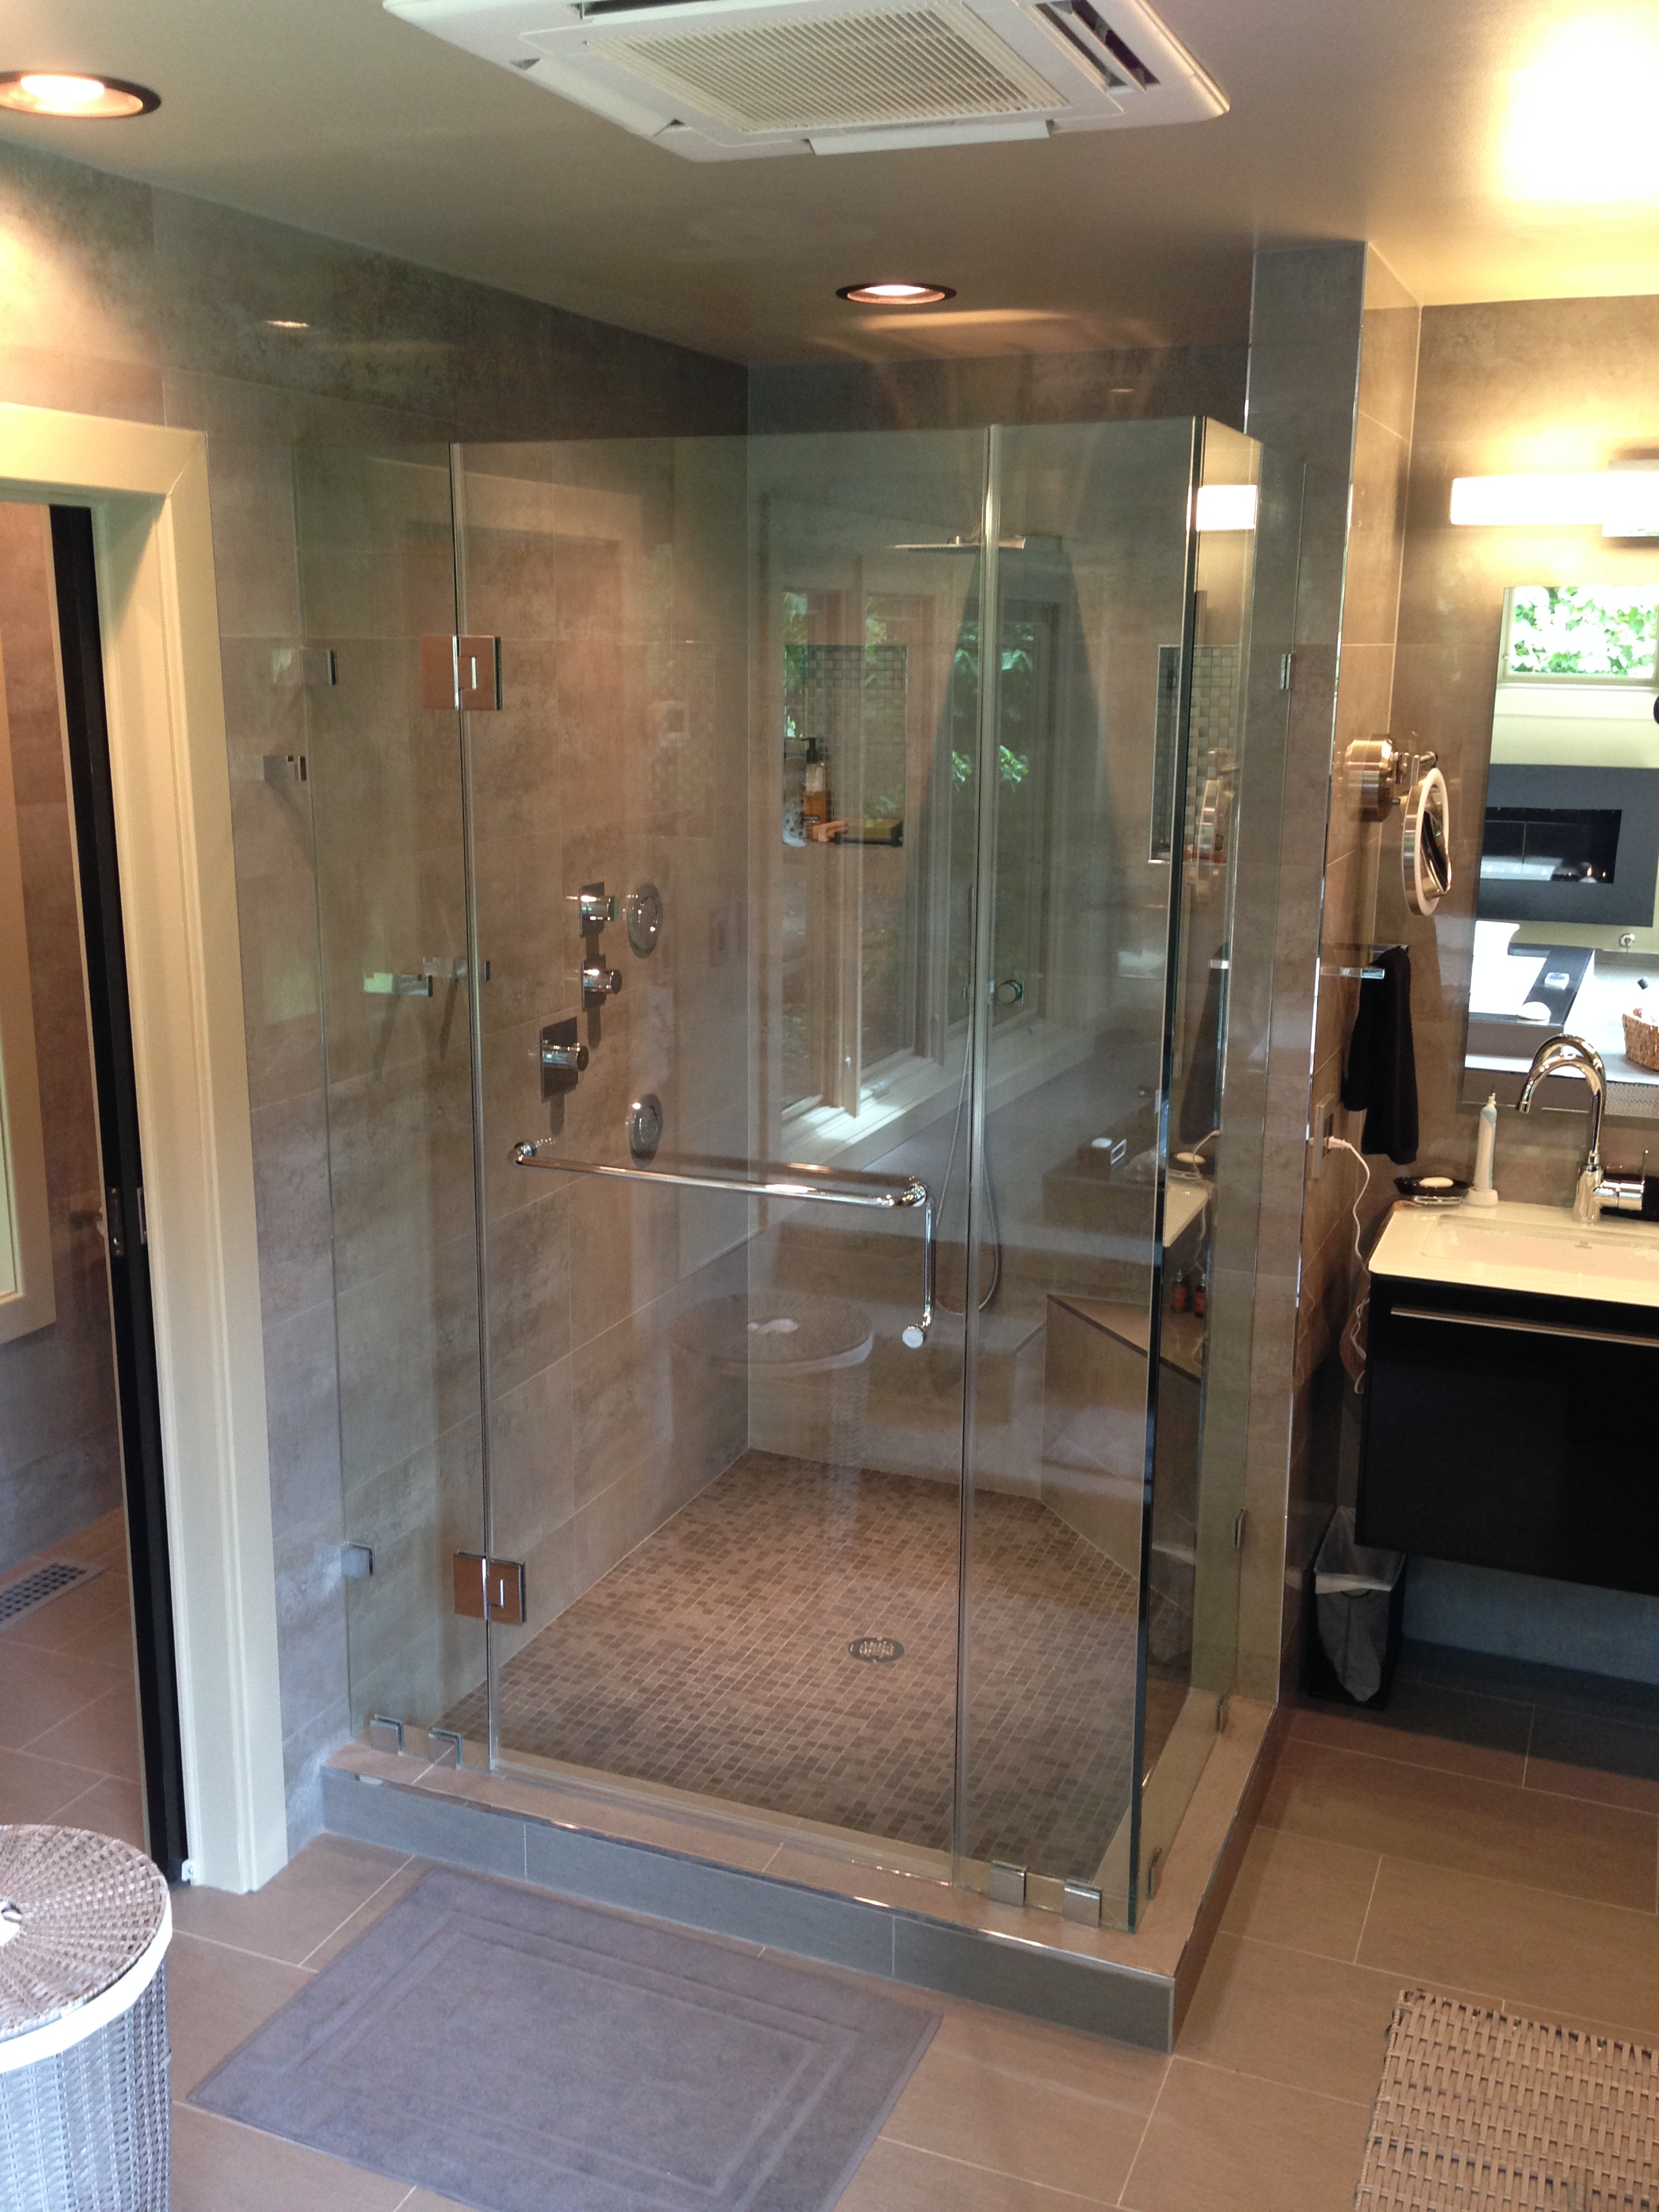 AFTER:  new shower with body sprays, rain shower head, shampoo niches, and corner seat.  Luxury!